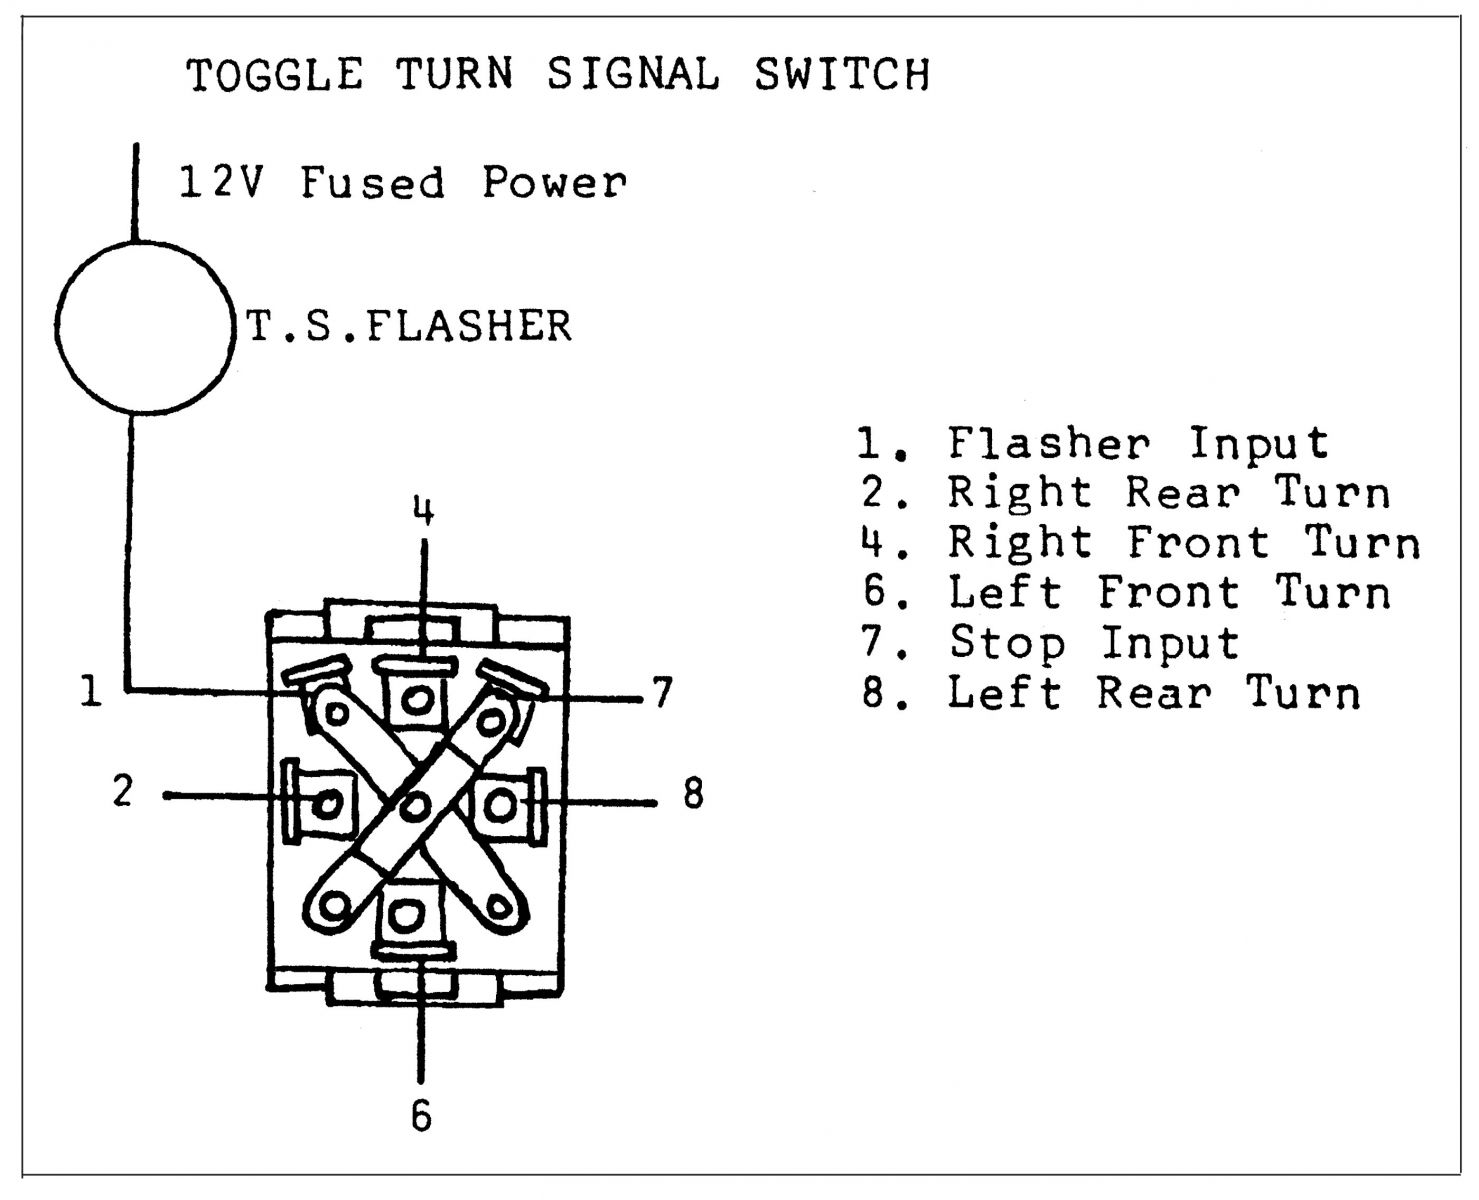 Turn signals 3 turn signals for early hot rods hotrod hotline turn signal kit wiring diagram at virtualis.co